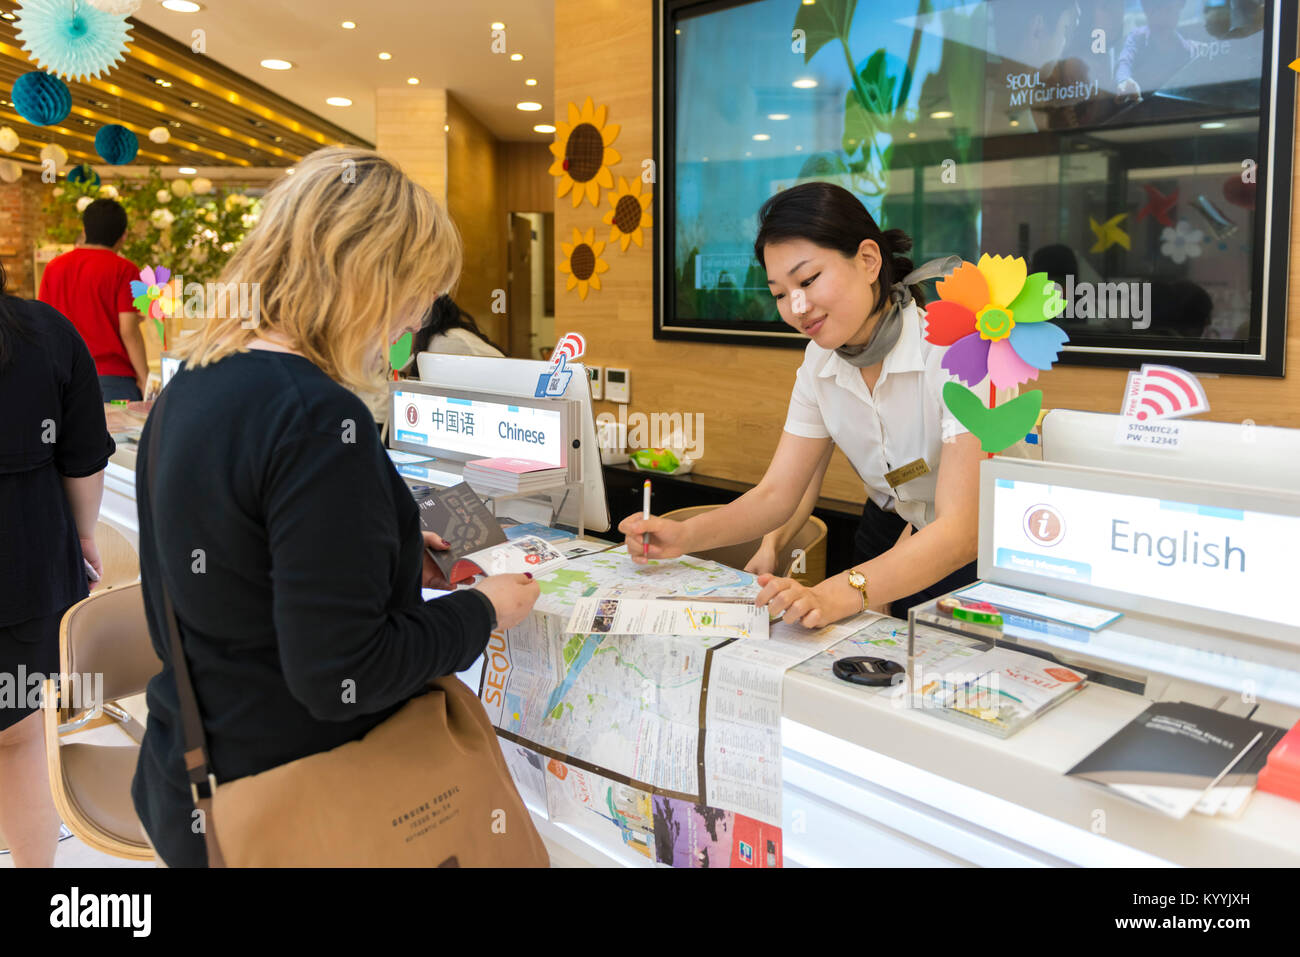 Tourist Office, Seoul, South Korea - woman tourist at the counter inside the tourism office asking for directions - Stock Image